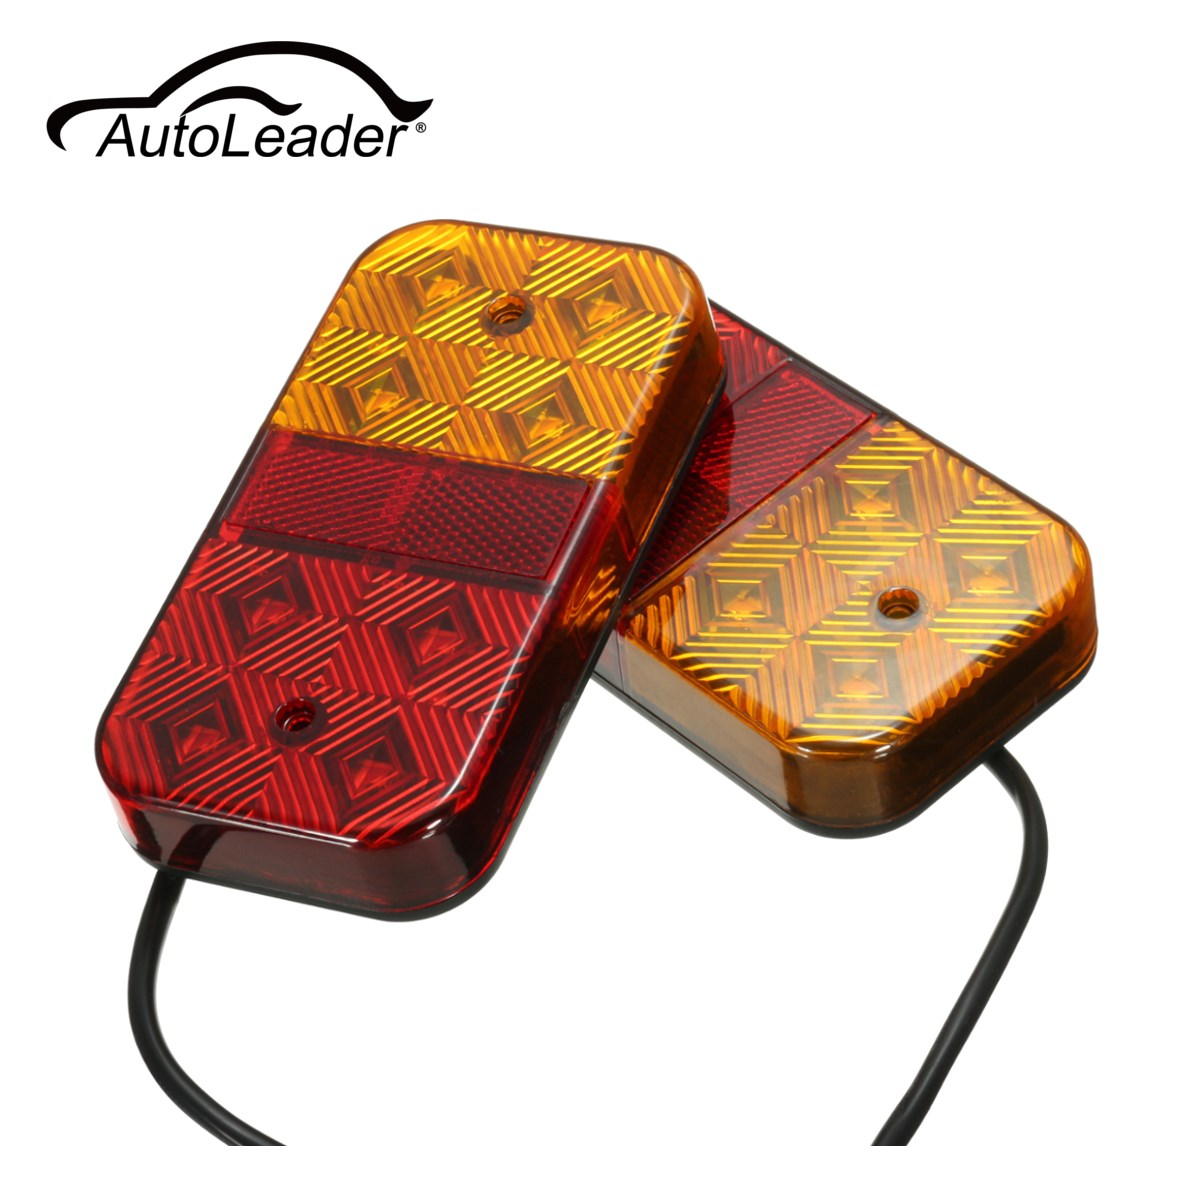 AutoLeader 8 LED Car Truck Lorry Tail Light Warning Lights Rear Lamps Waterproof Taillights Rear Parts for Trailer Truck Boat